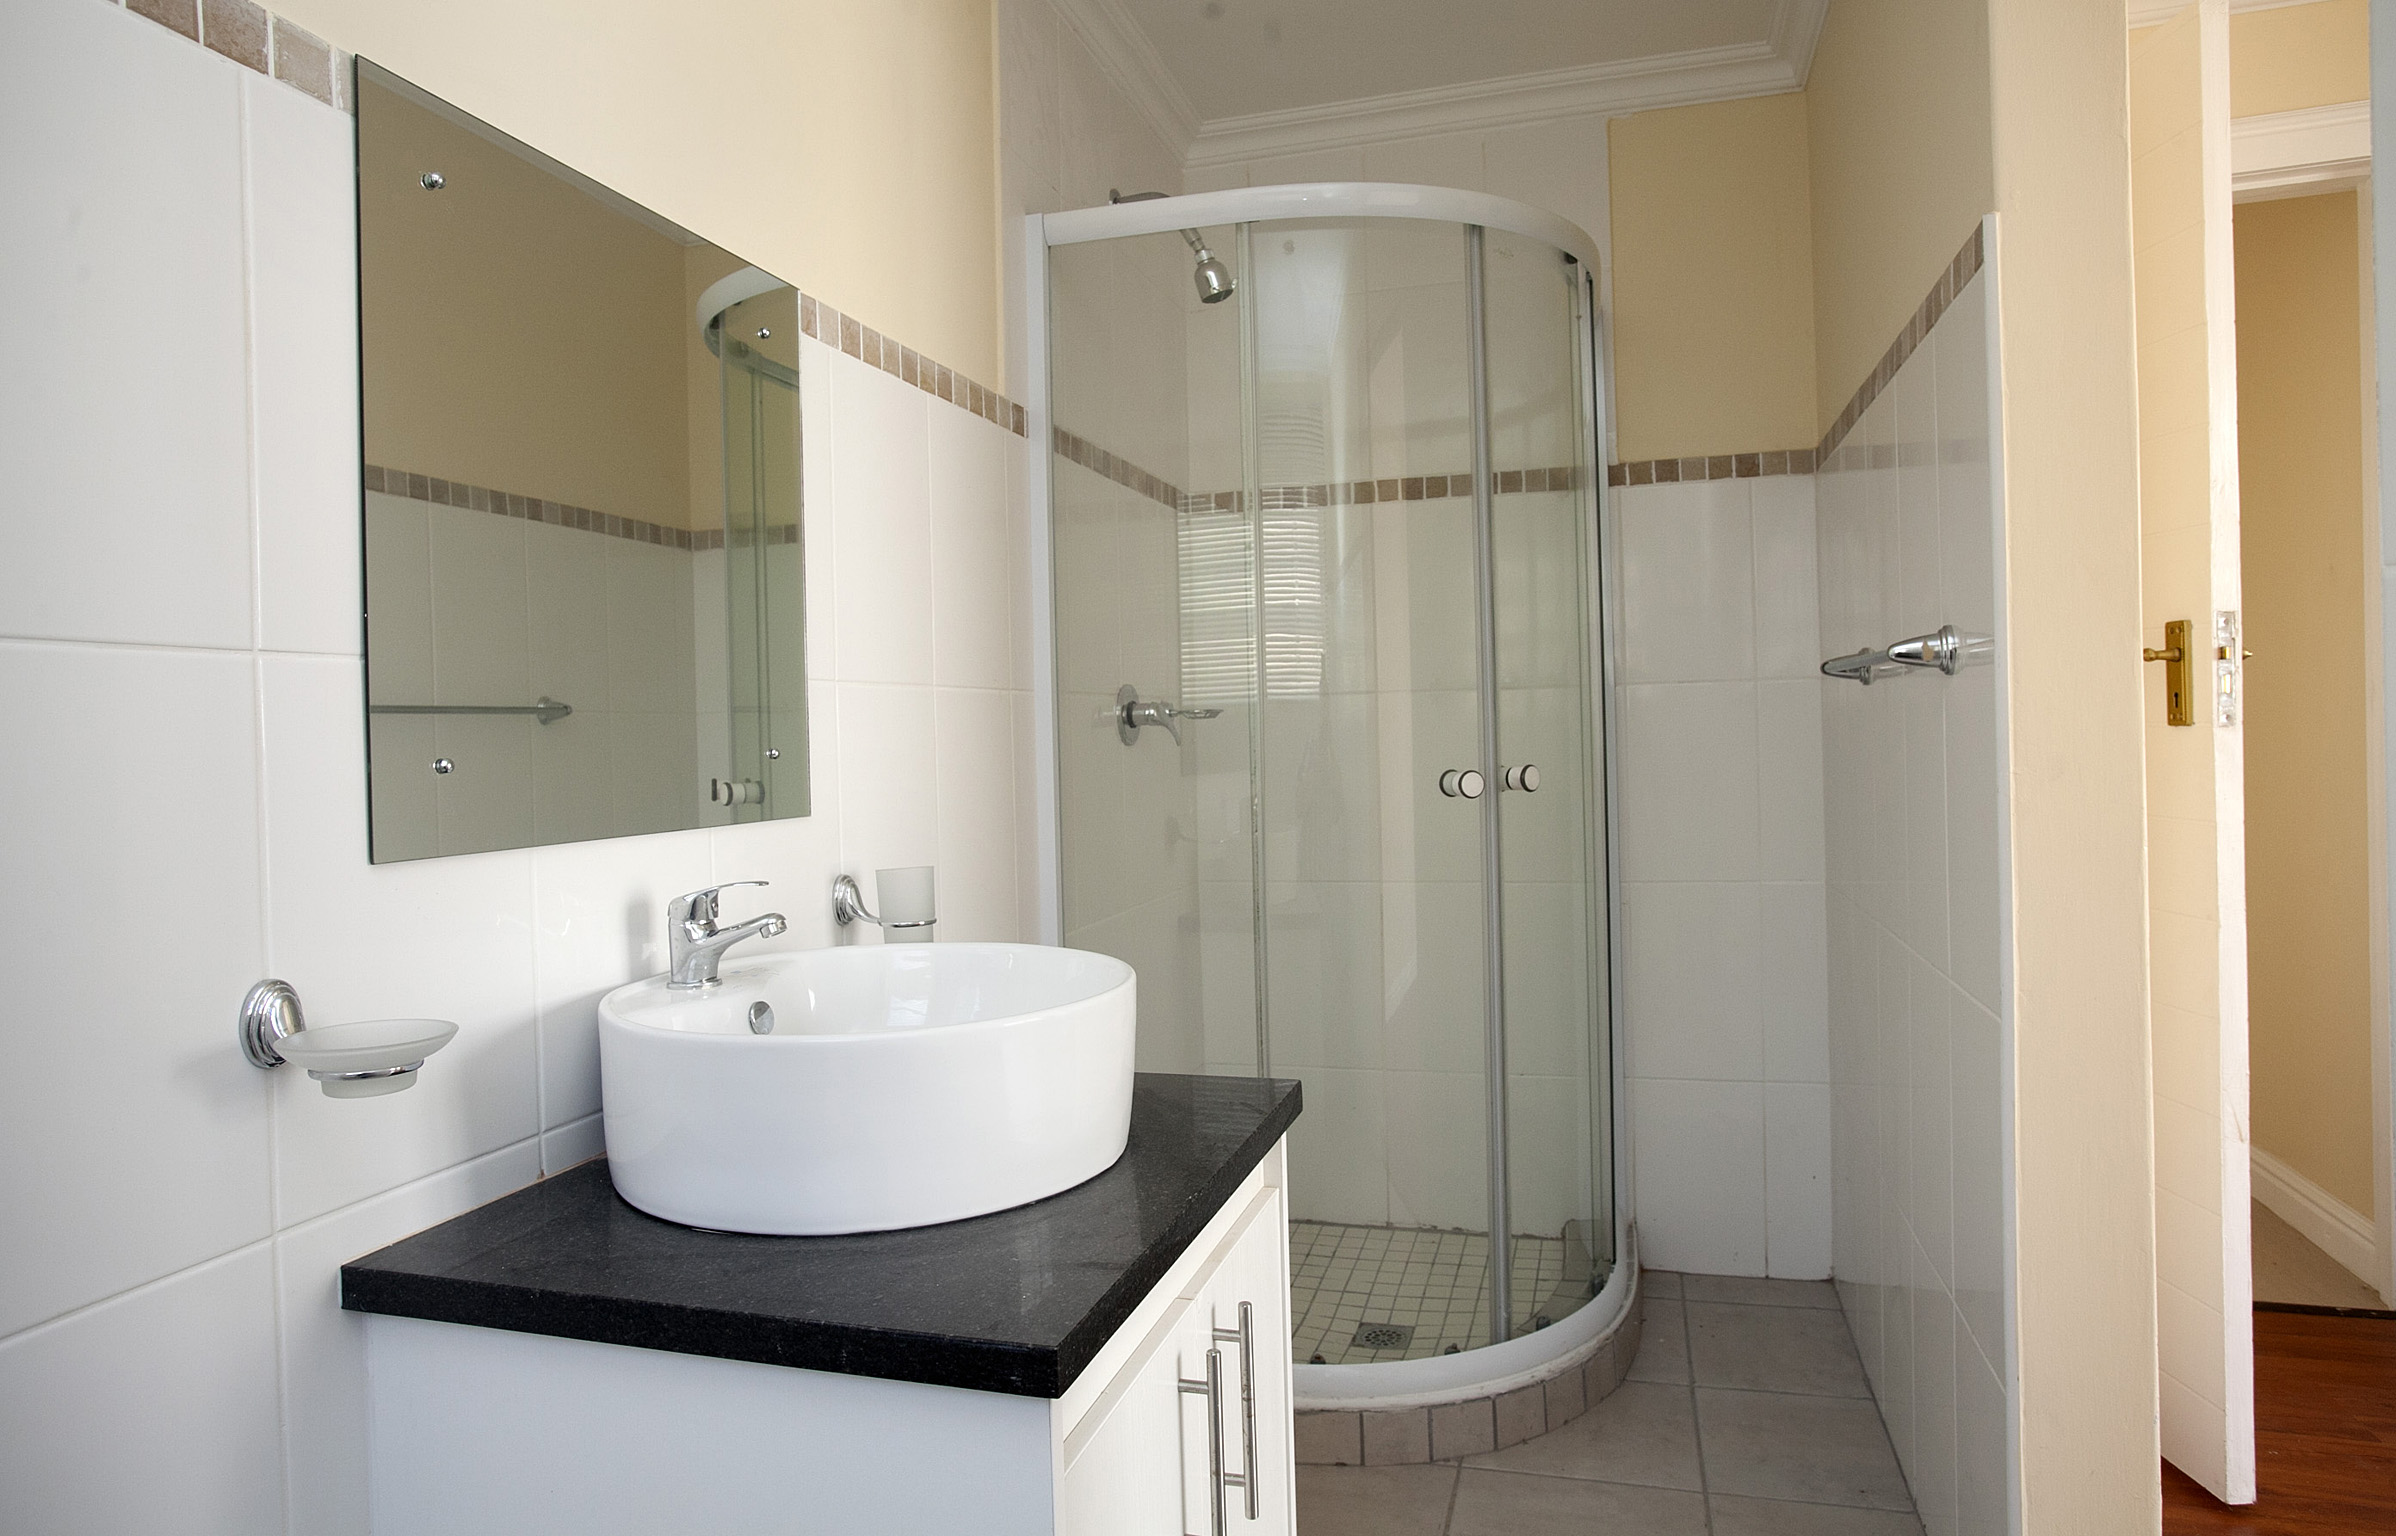 4 Bedroom House for sale in Lorraine ENT0068019 : photo#14